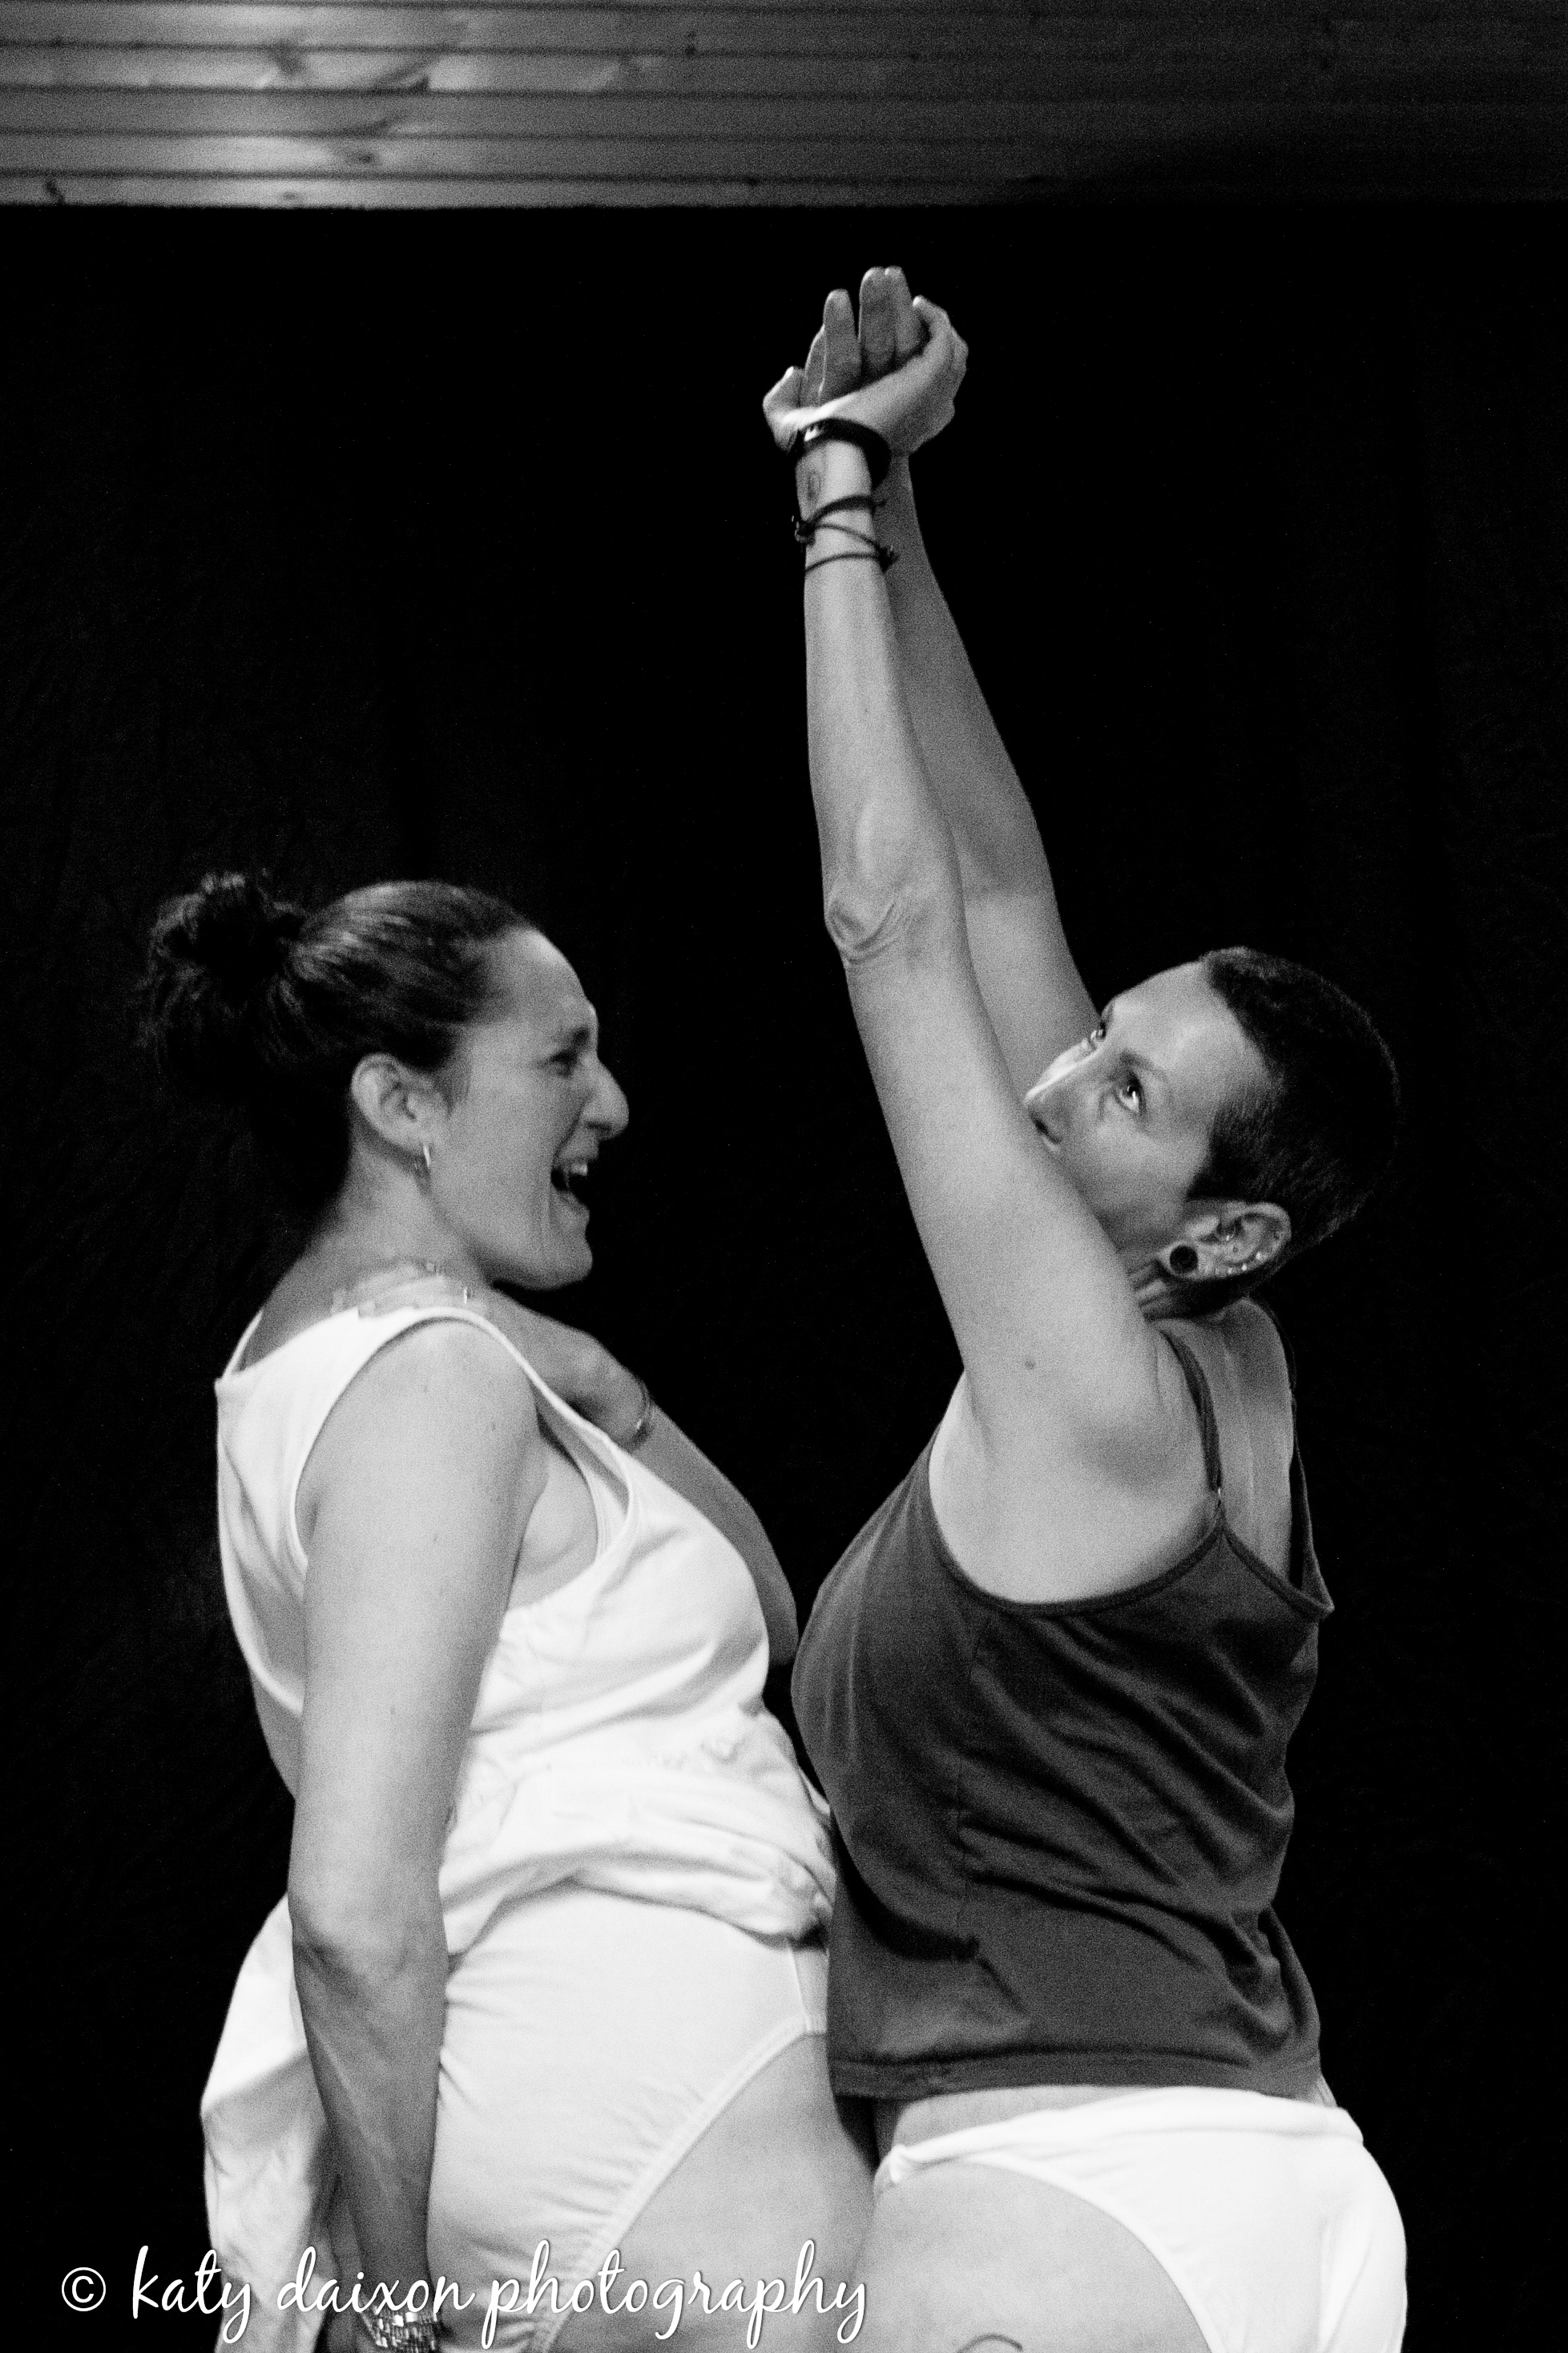 the-body-project-katy-daixon-photography-candids-24